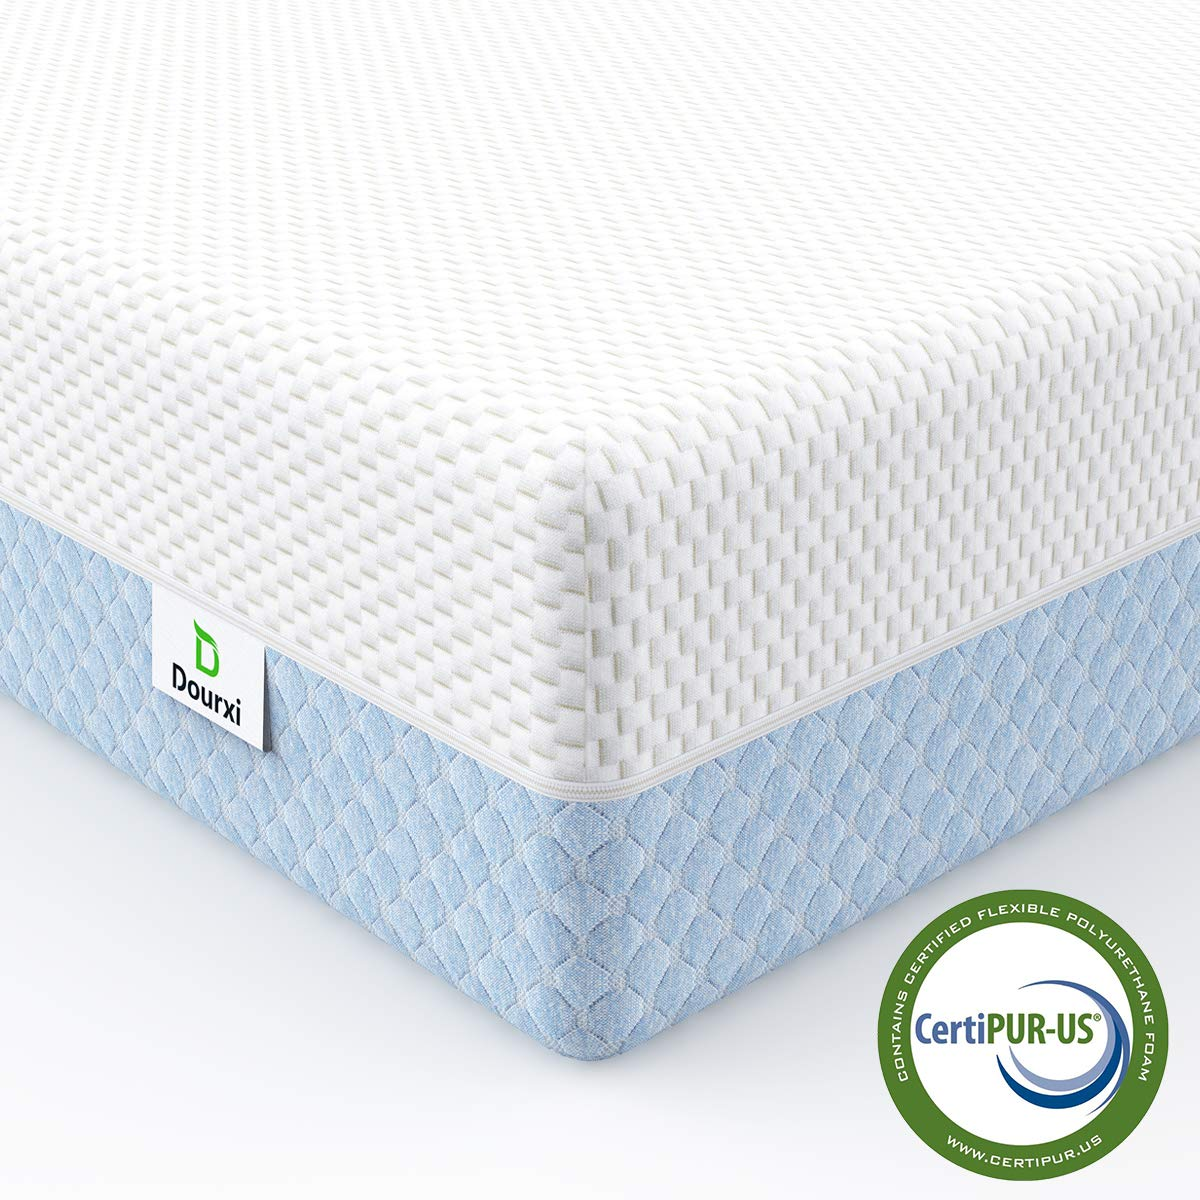 Dourxi Crib Mattress, Dual Sided Comfort Memory Foam Toddler Bed Mattress, Triple-Layer Breathable Premium Baby Mattress for Infant and Toddler w/Removable Outer Cover - White&Blue by Dourxi